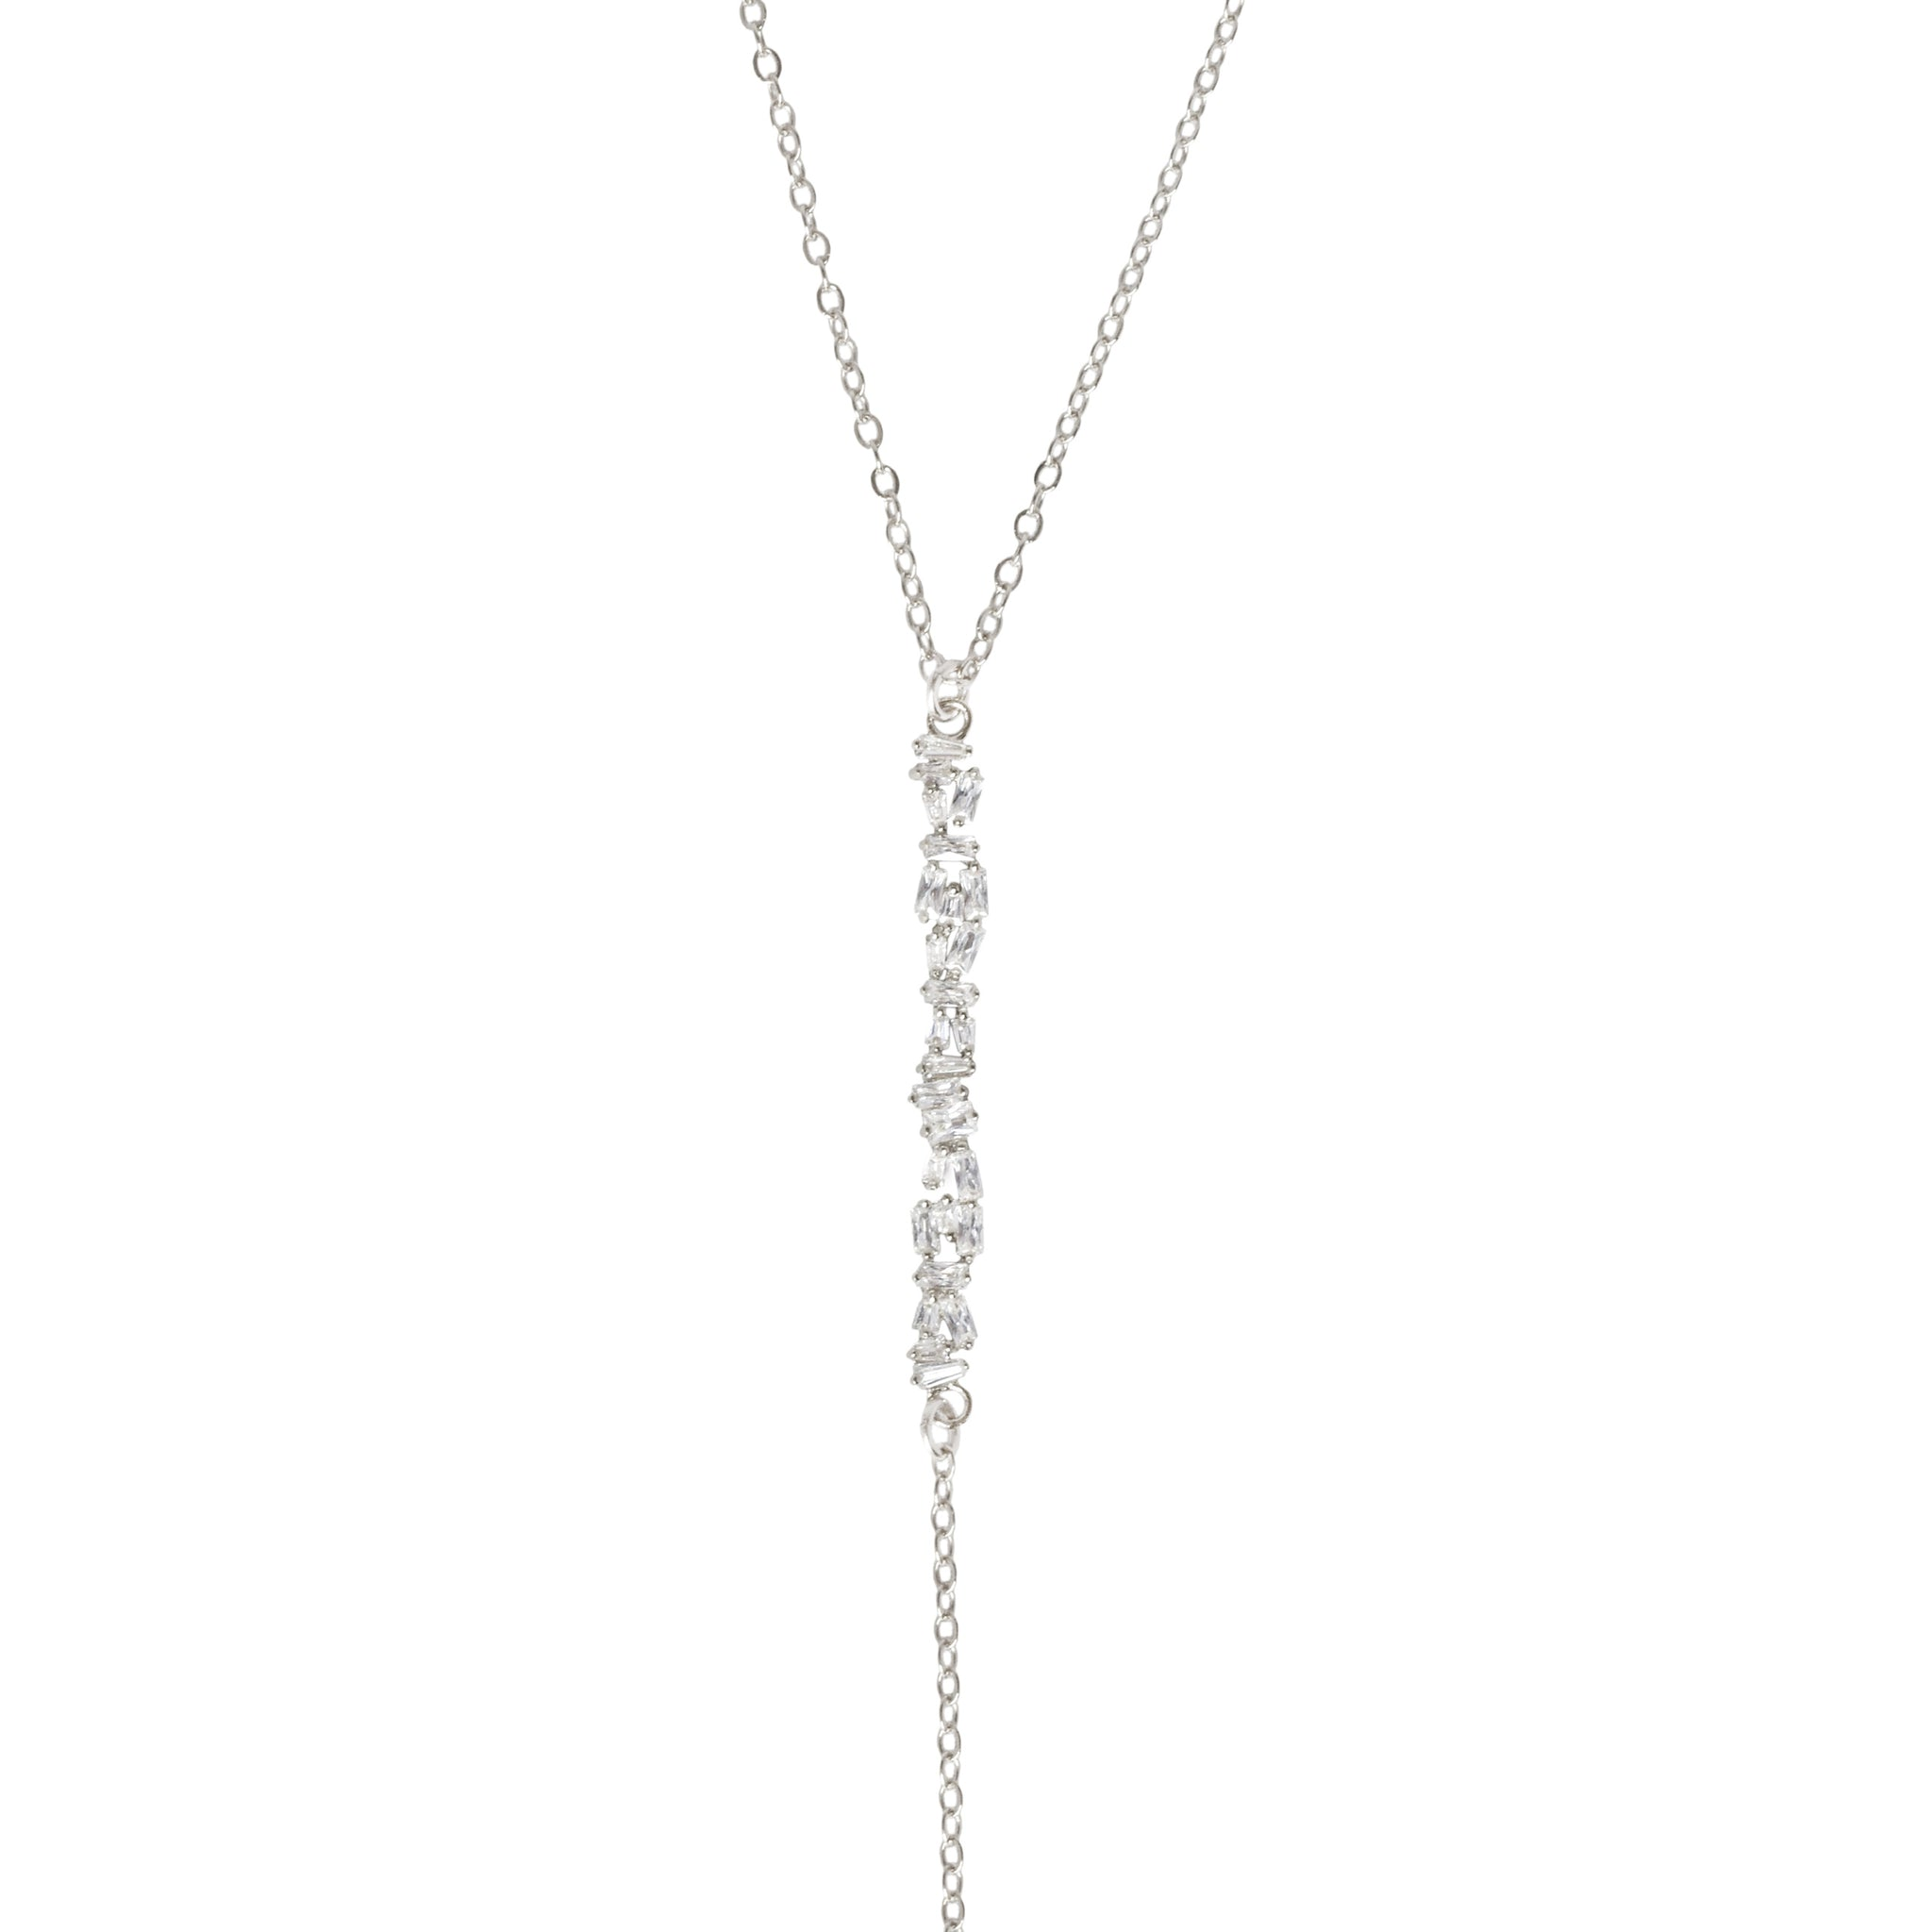 ALTA CRYSTAL BAGUETTE BAR LARIAT NECKLACE